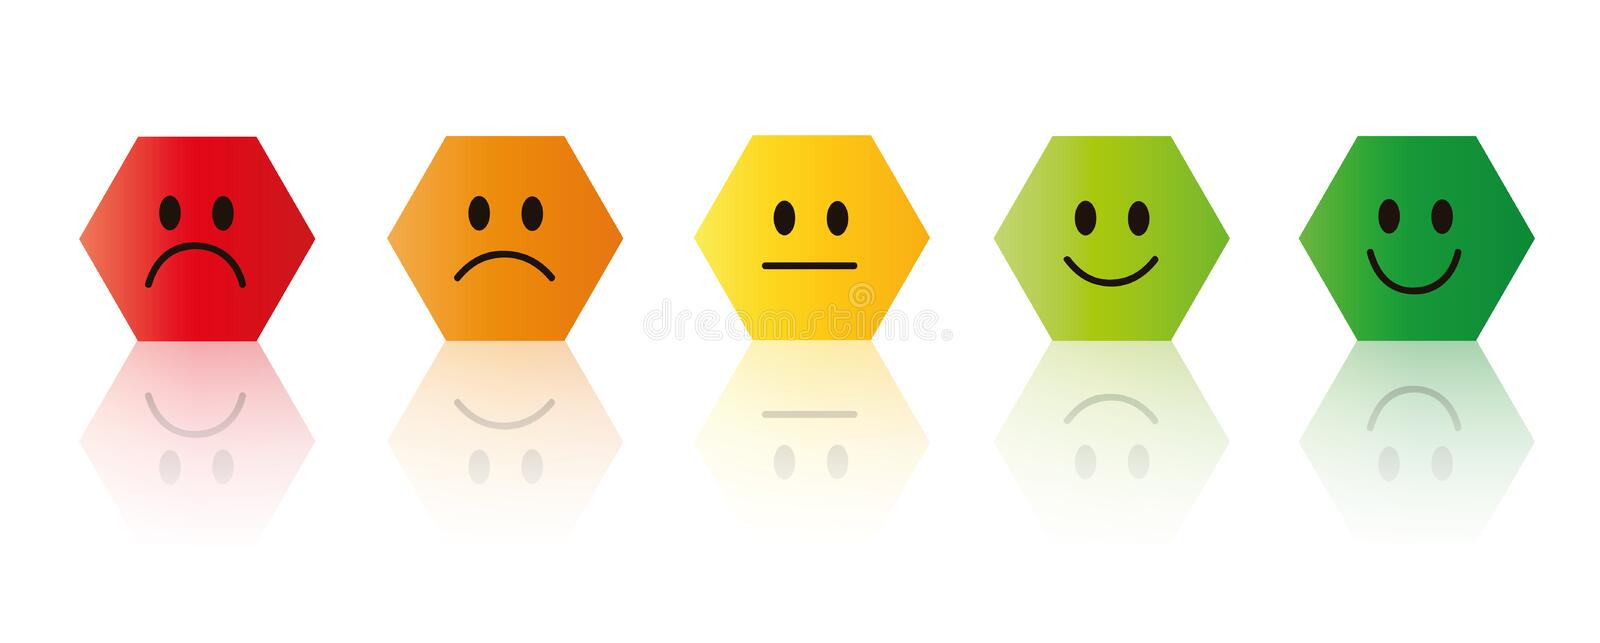 Five rating smiley faces red to green polygon vector illustration